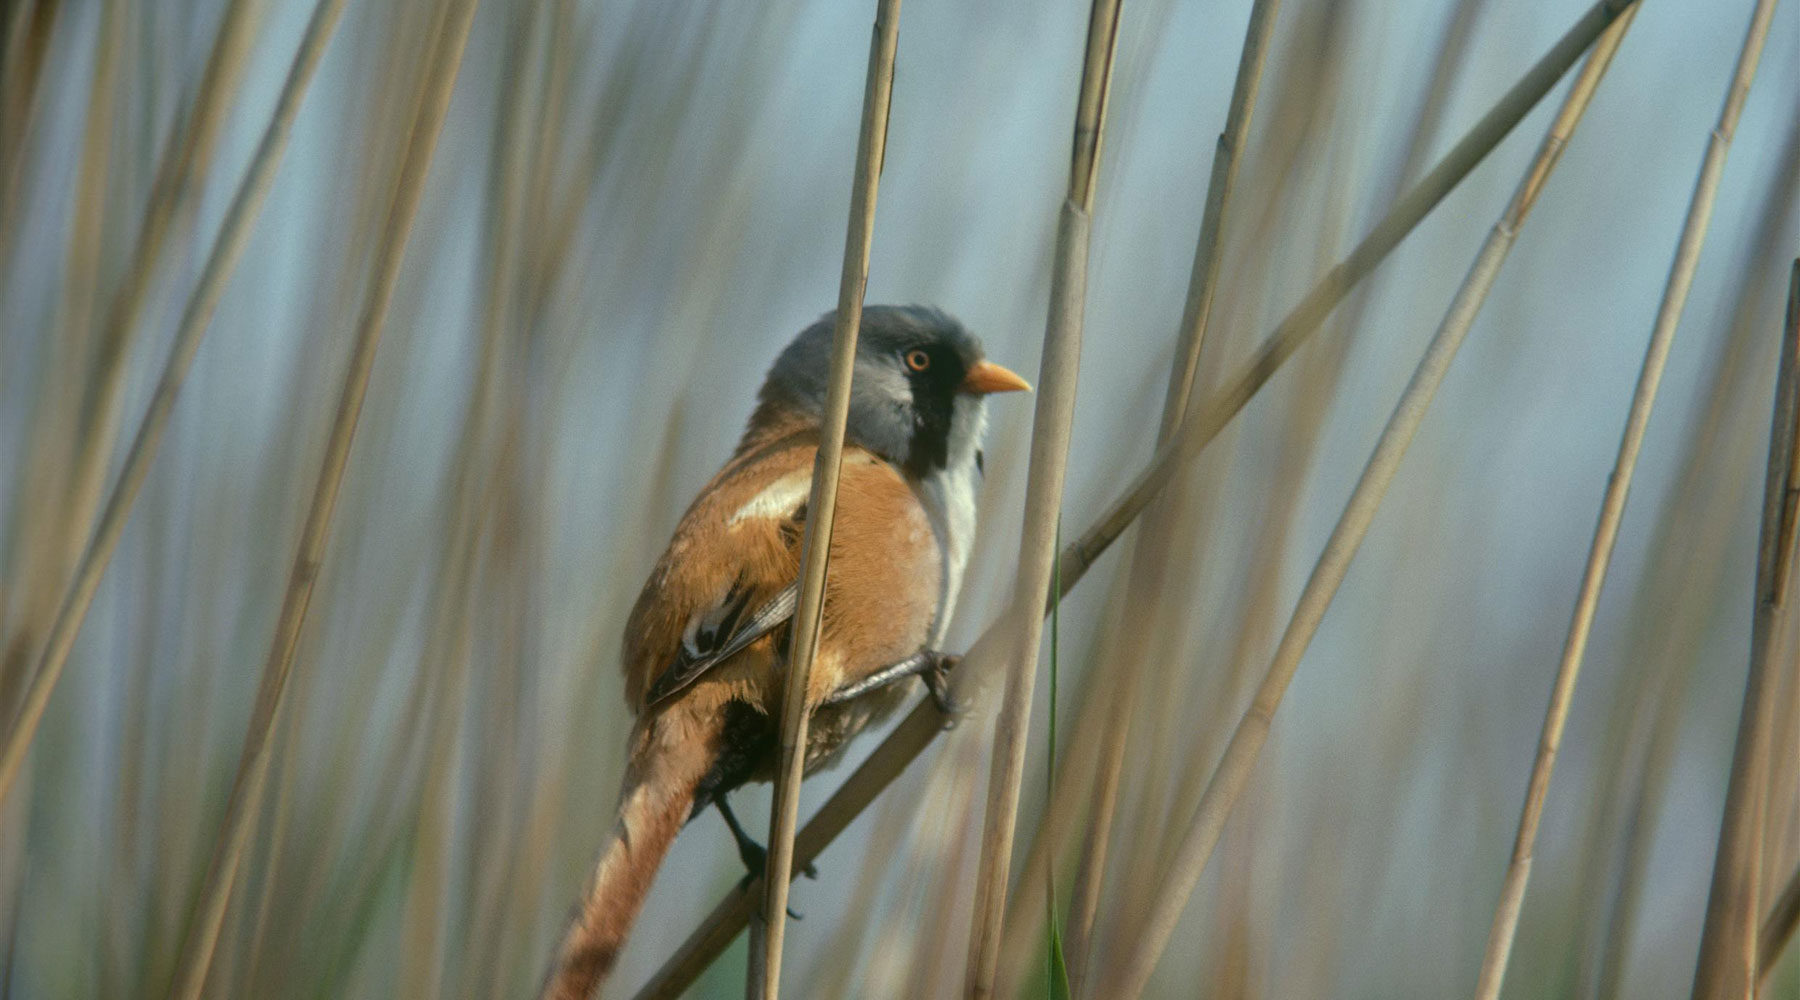 Mike Richards (rspb-images.com) | Bearded Tit